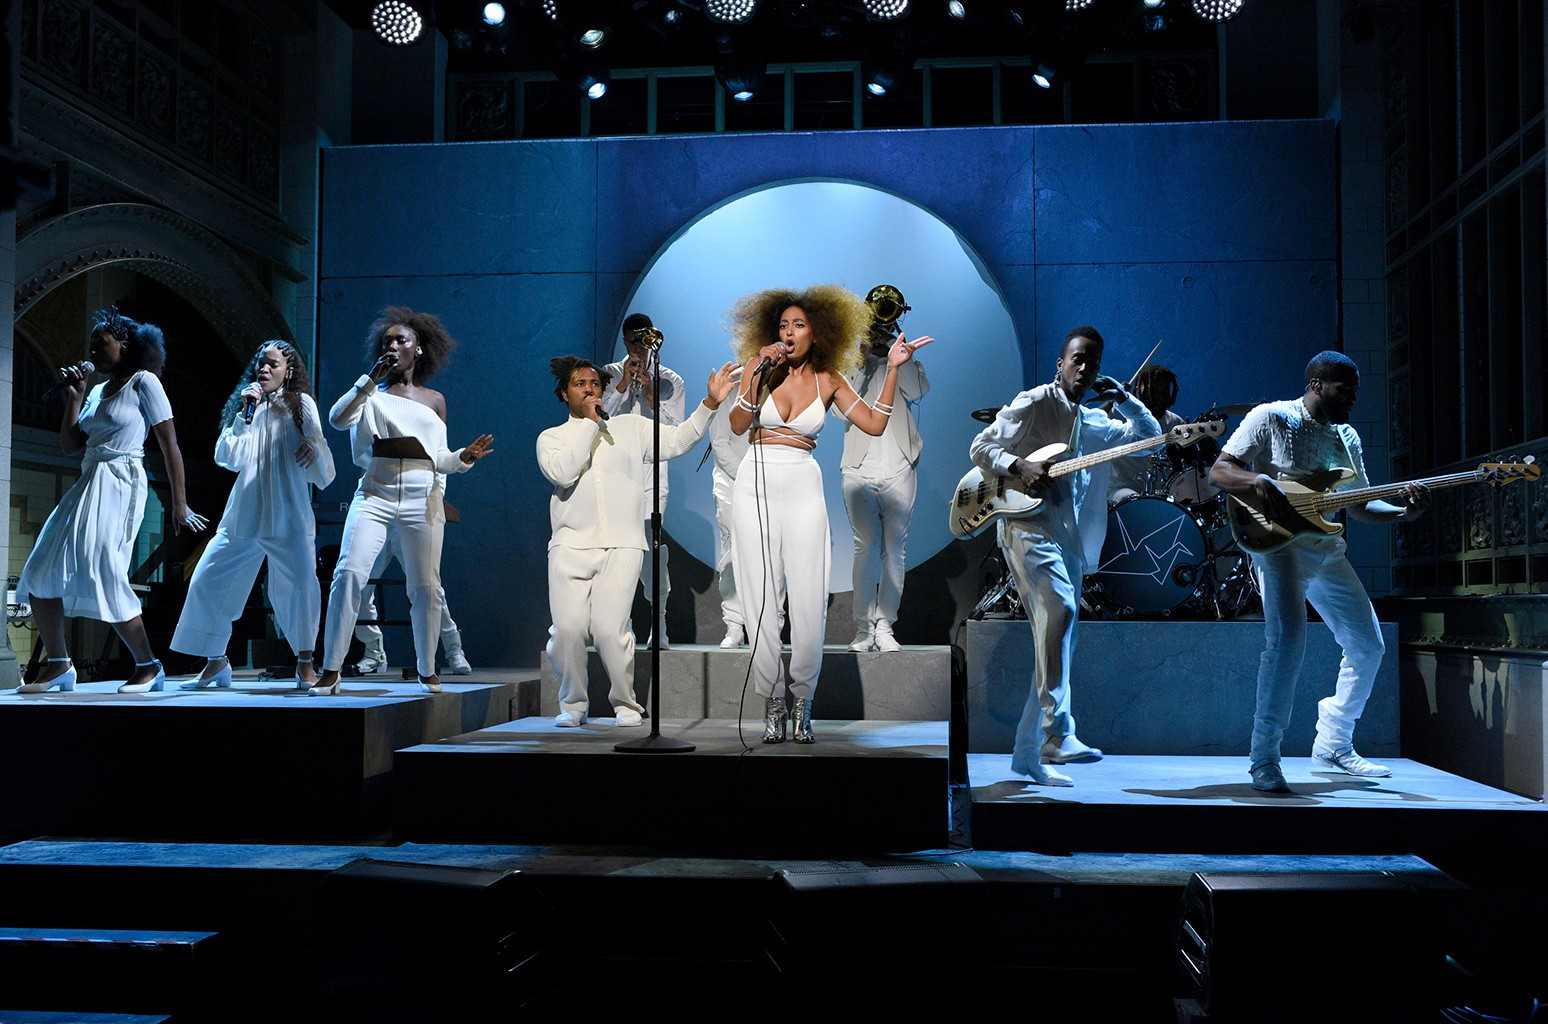 Solange Knowles performs on Saturday Night Live on Nov. 5, 2016.